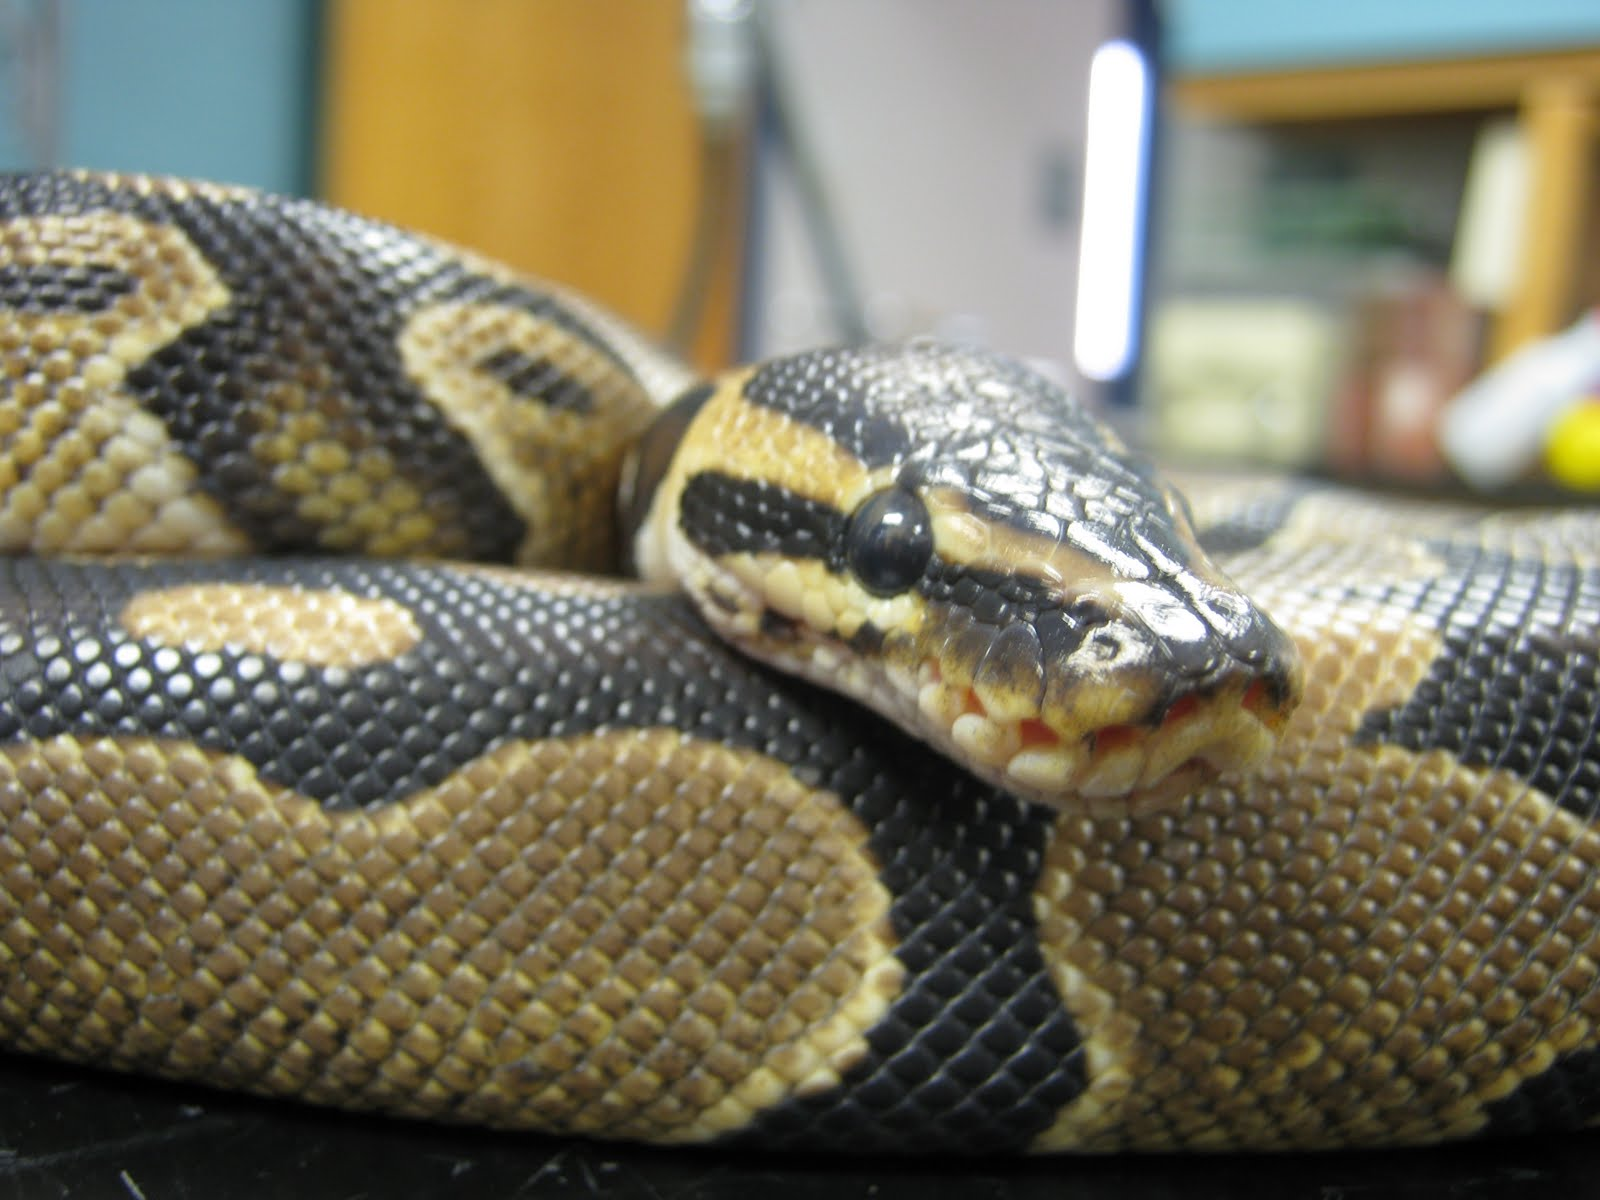 ball python Find and follow posts tagged ball python on tumblr.